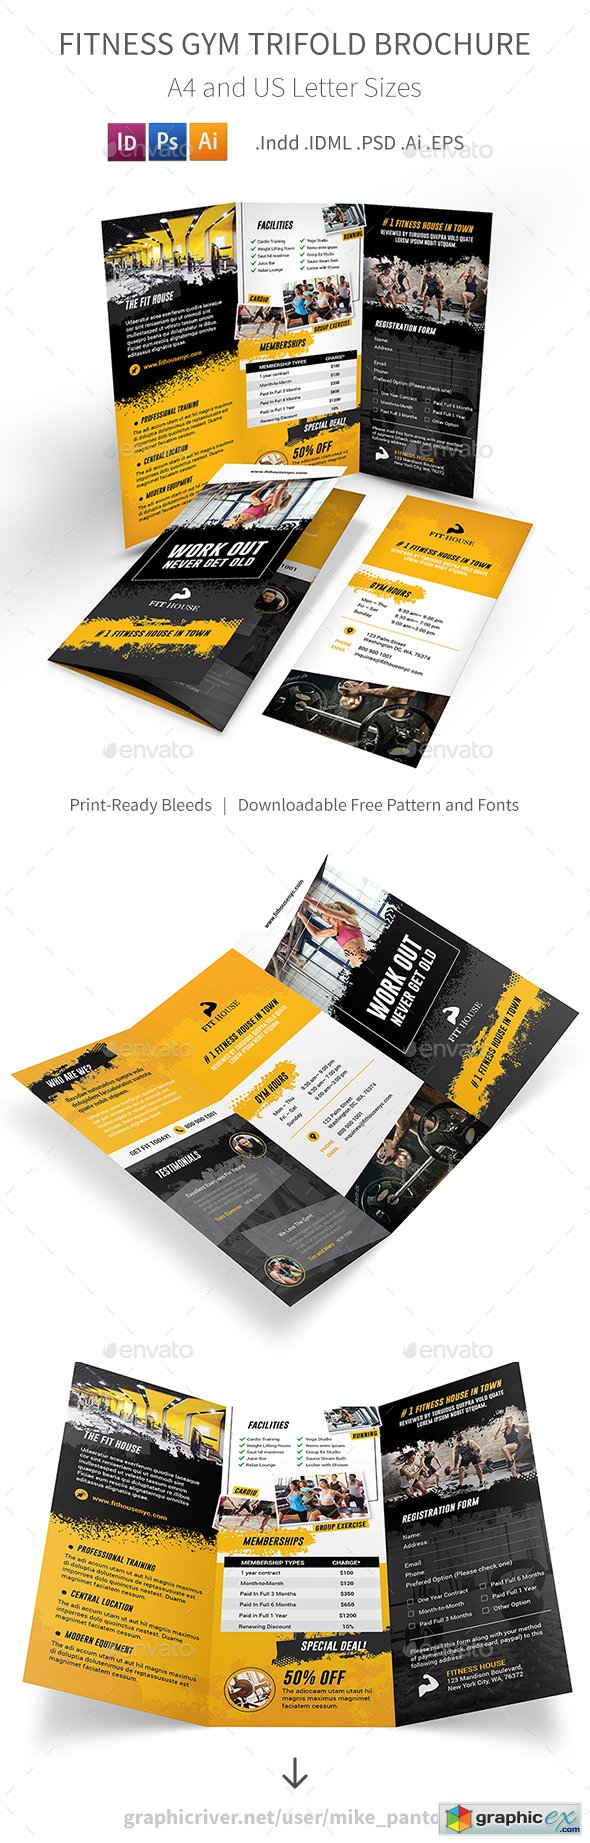 Fitness Gym Trifold Brochure 5